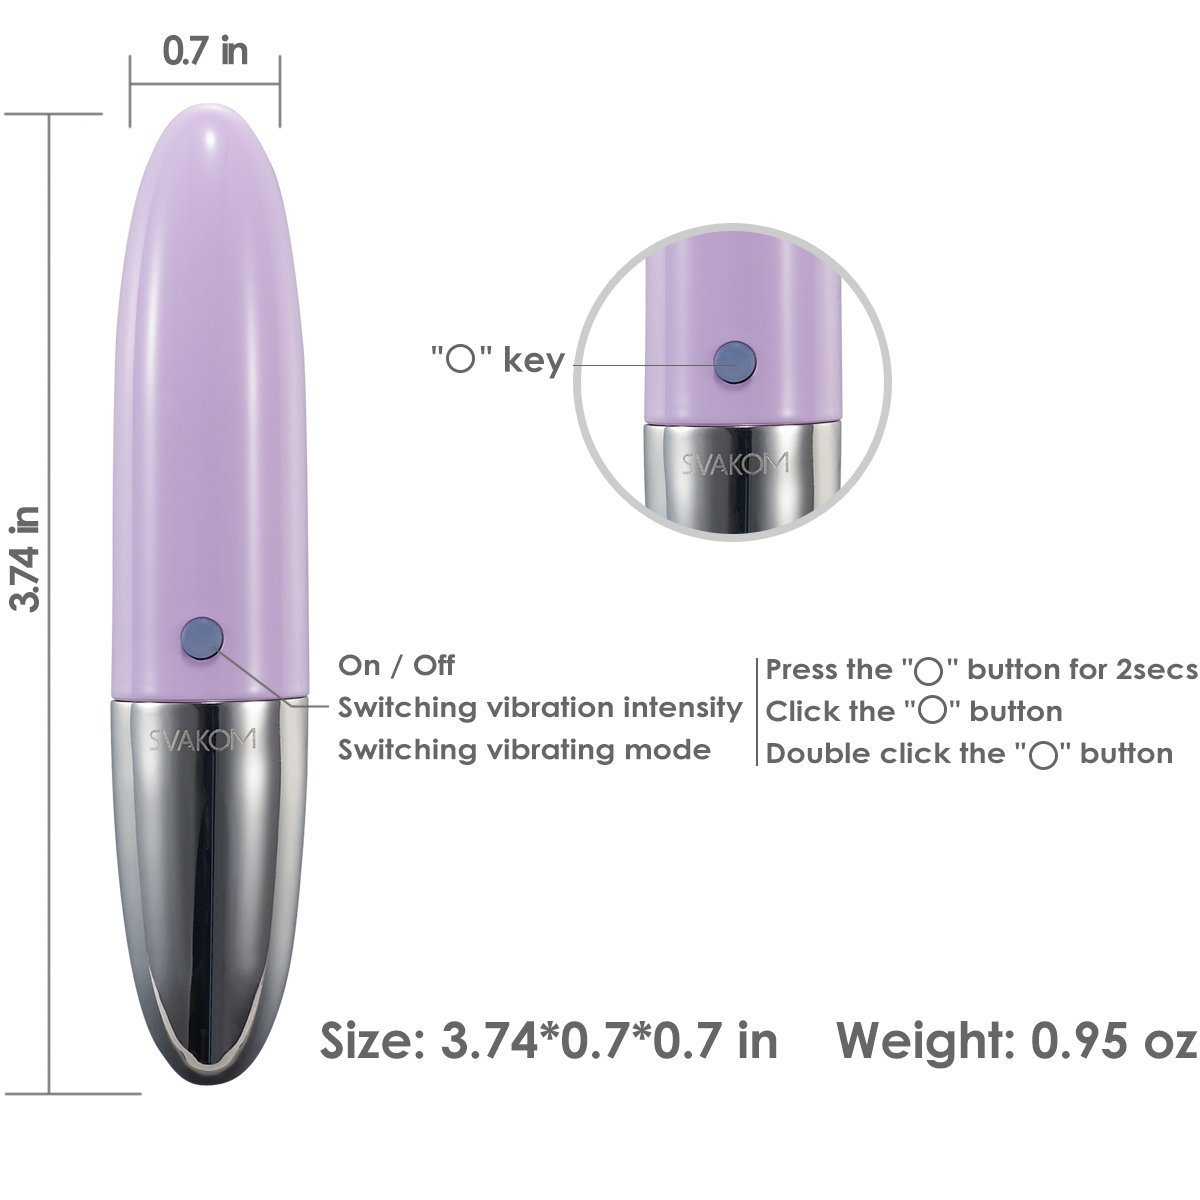 SVAKOM Rebecca Mini Portable Vibrator Rechargeable Stimulator Sex toy Wand Massager Vibes for Women or Couples(Pale Purple/Pink)